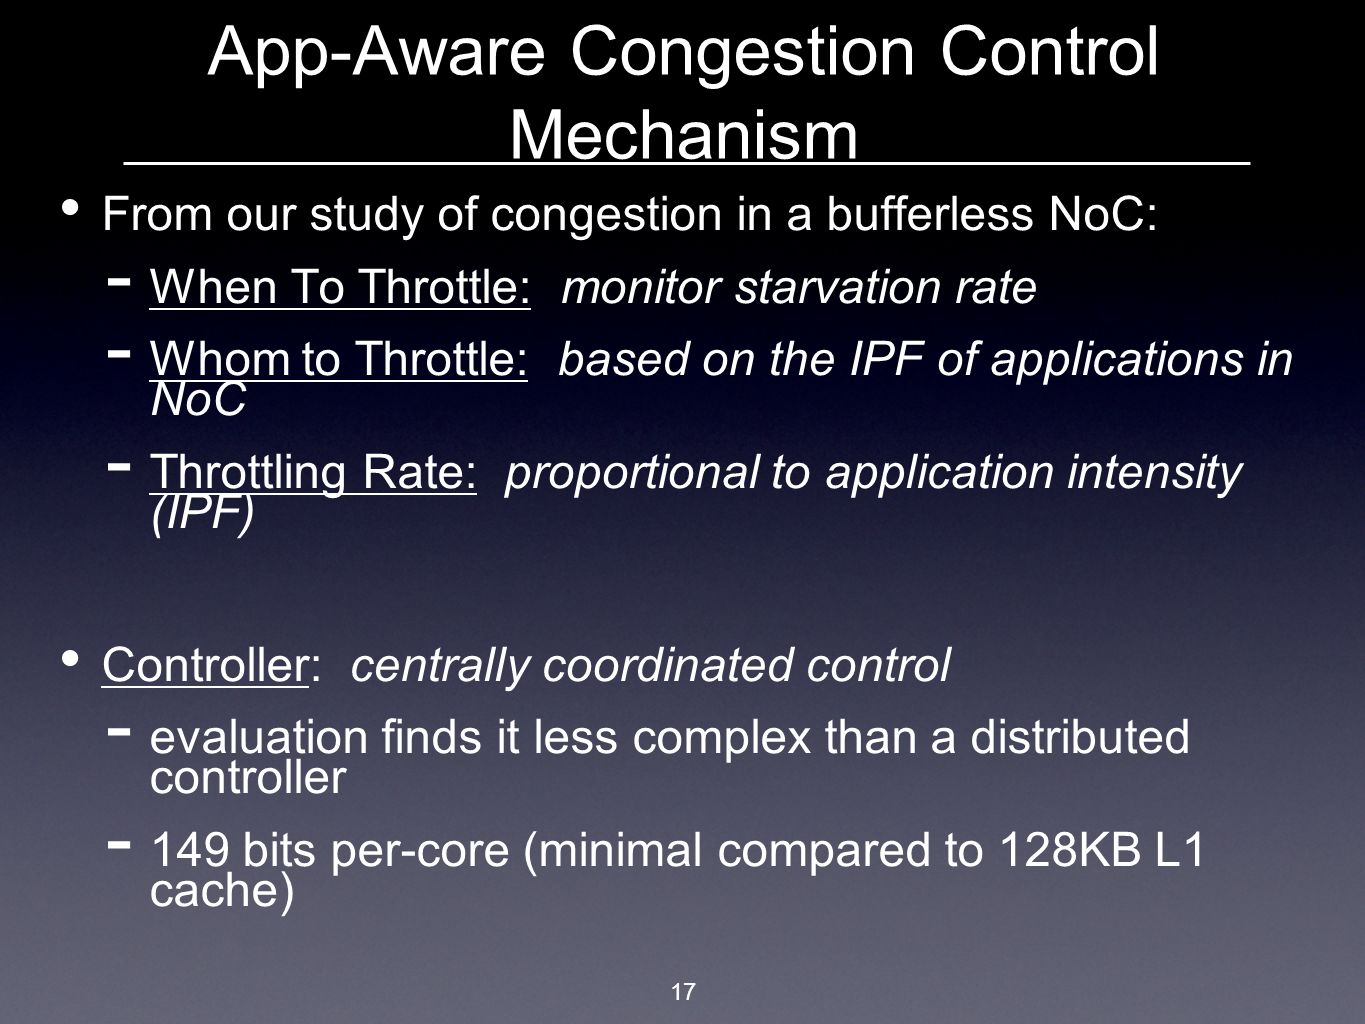 App-Aware Congestion Control Mechanism